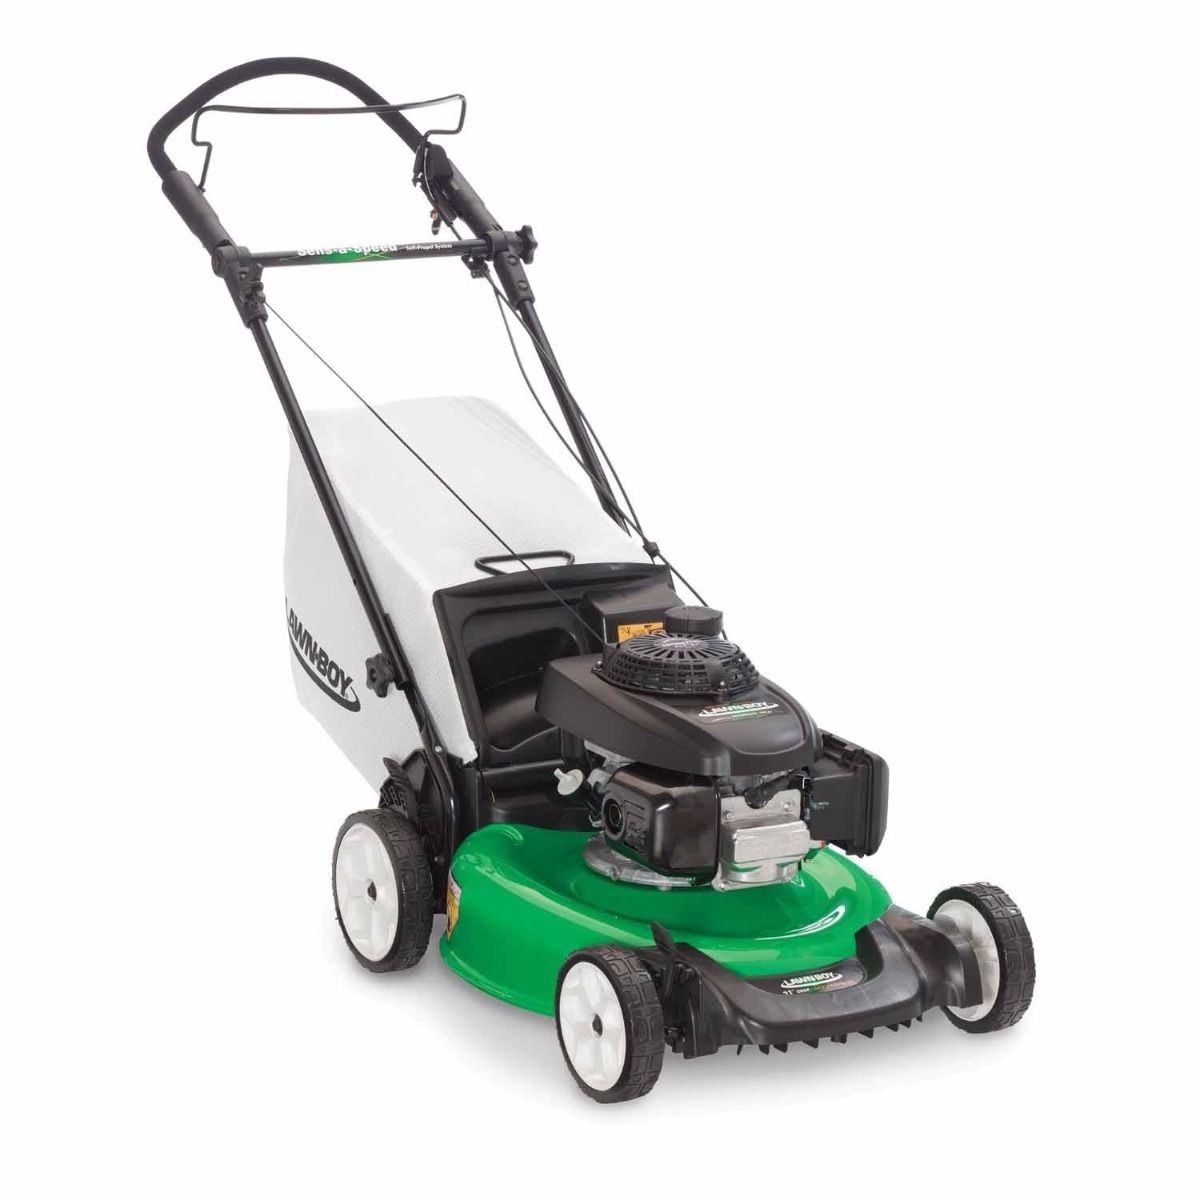 Lawn-Boy model 10736 with Honda Engine